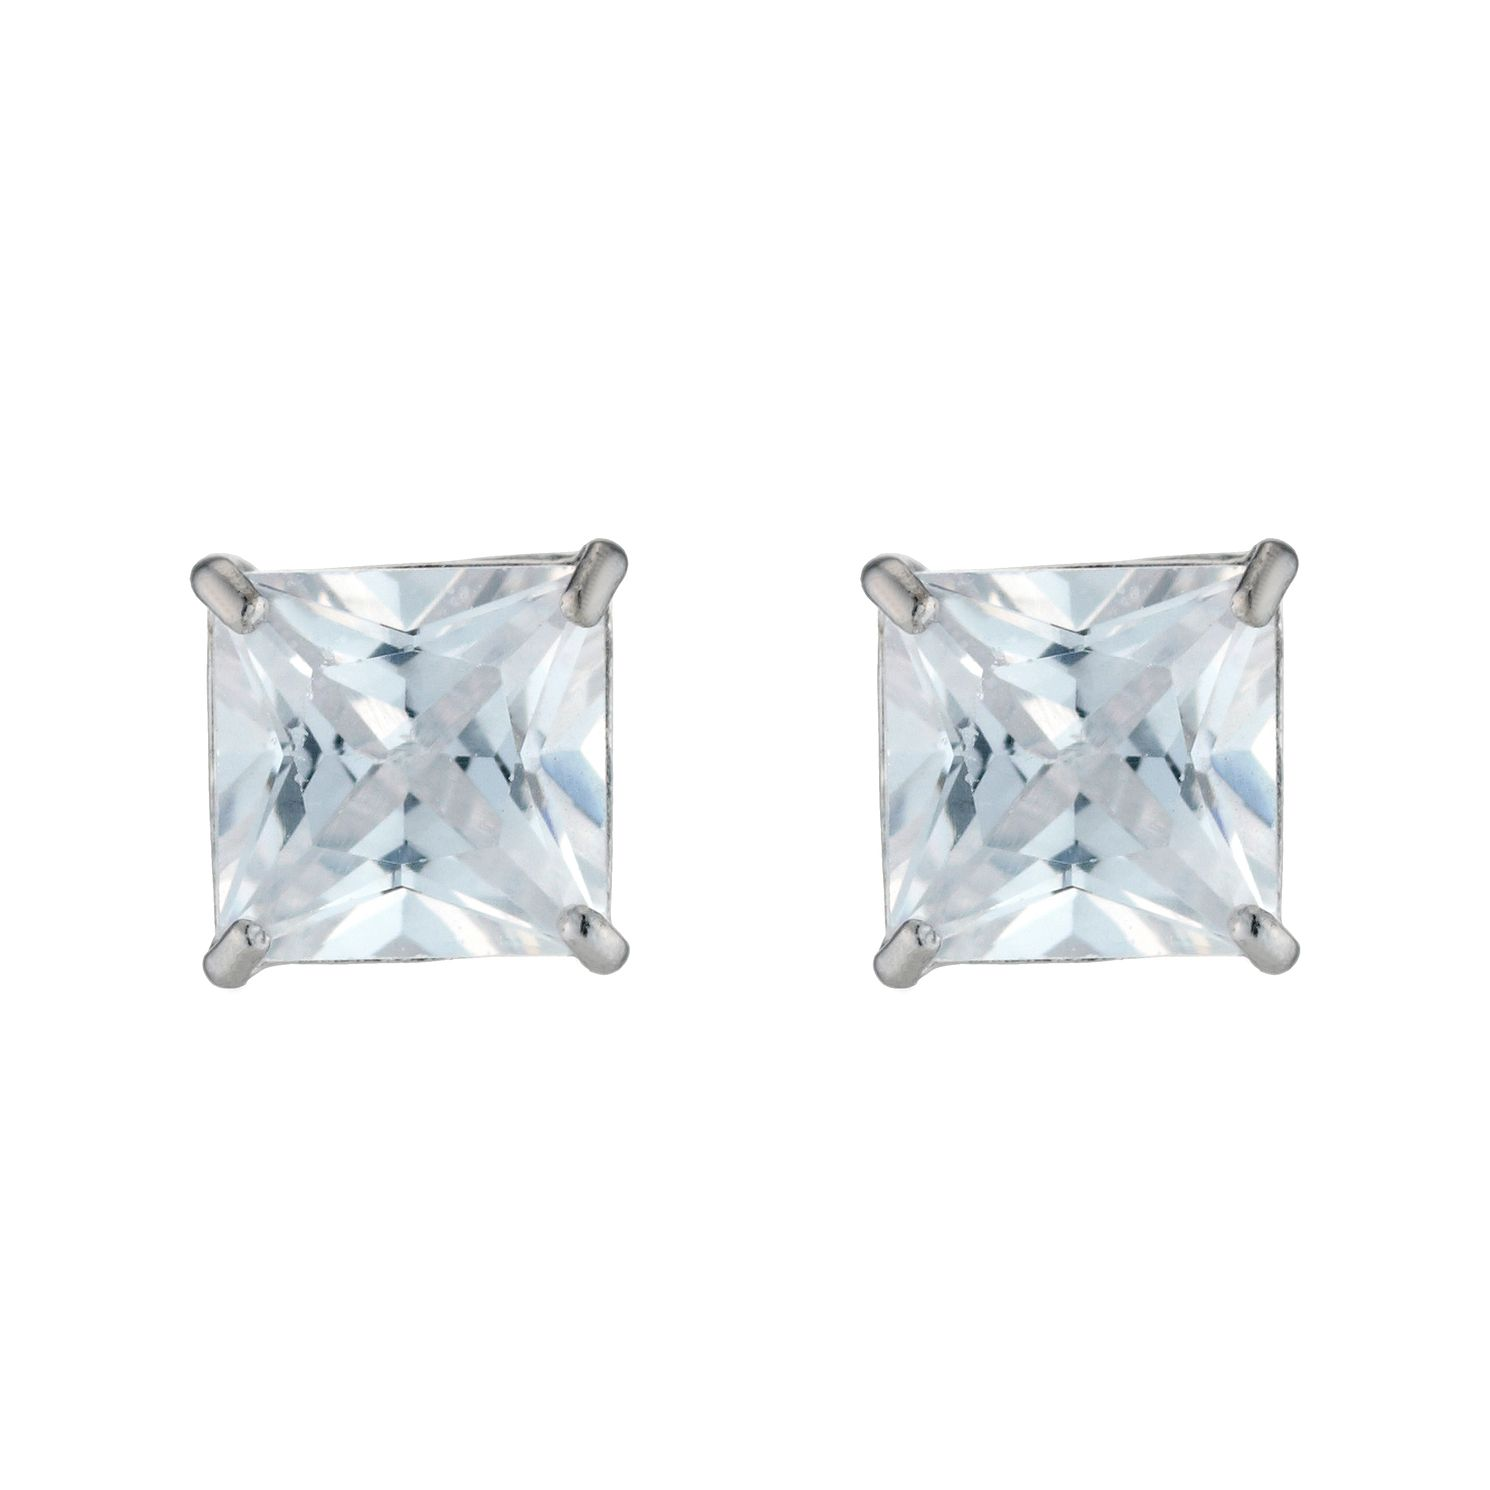 9ct White Gold Cubic Zirconia 5mm Square Stud Earrings - Product number 3468461